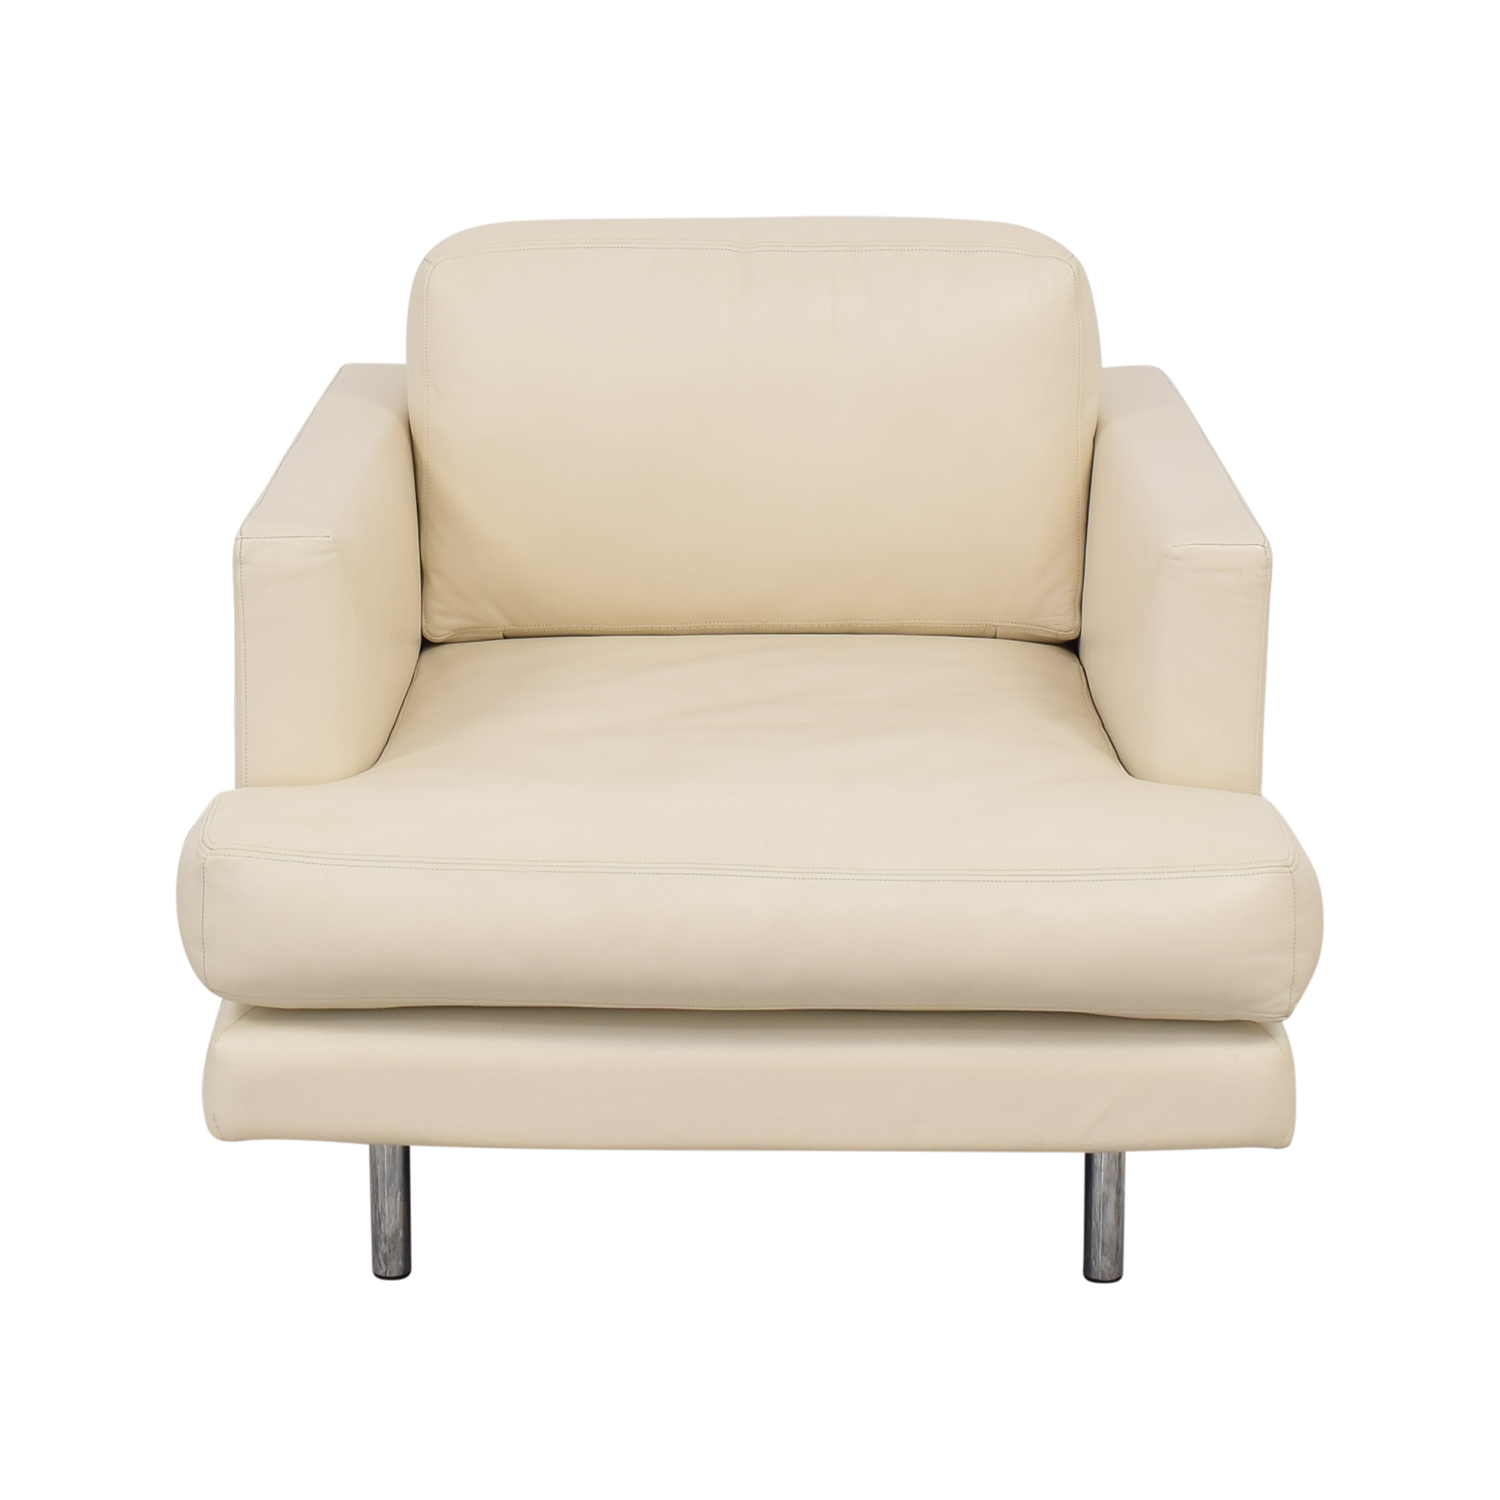 Knoll D'Urso Residential Lounge Chair sale